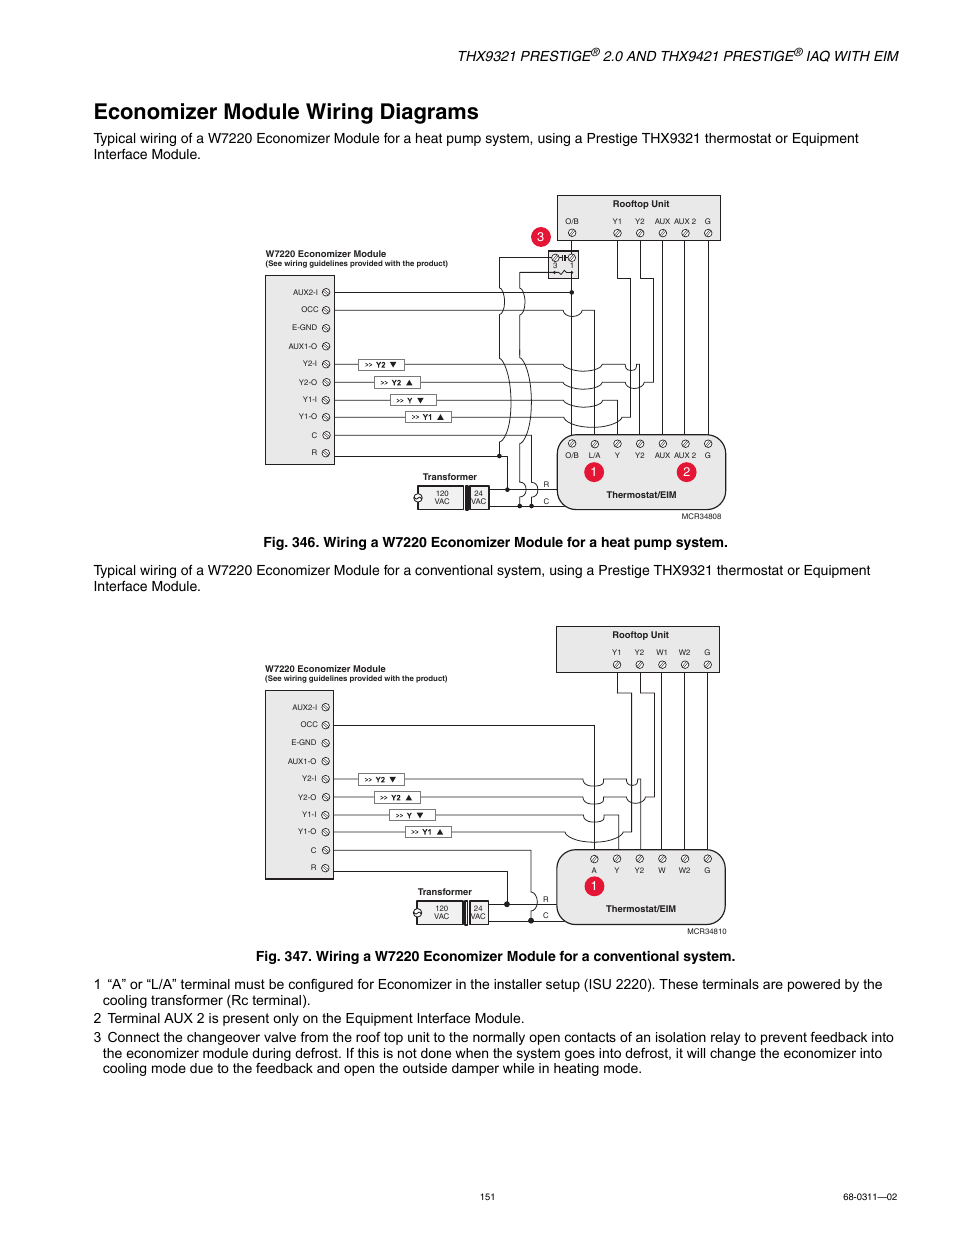 medium resolution of economizer module wiring diagrams thx9321 prestige iaq with eim honeywell prestige thx9321 user manual page 151 160